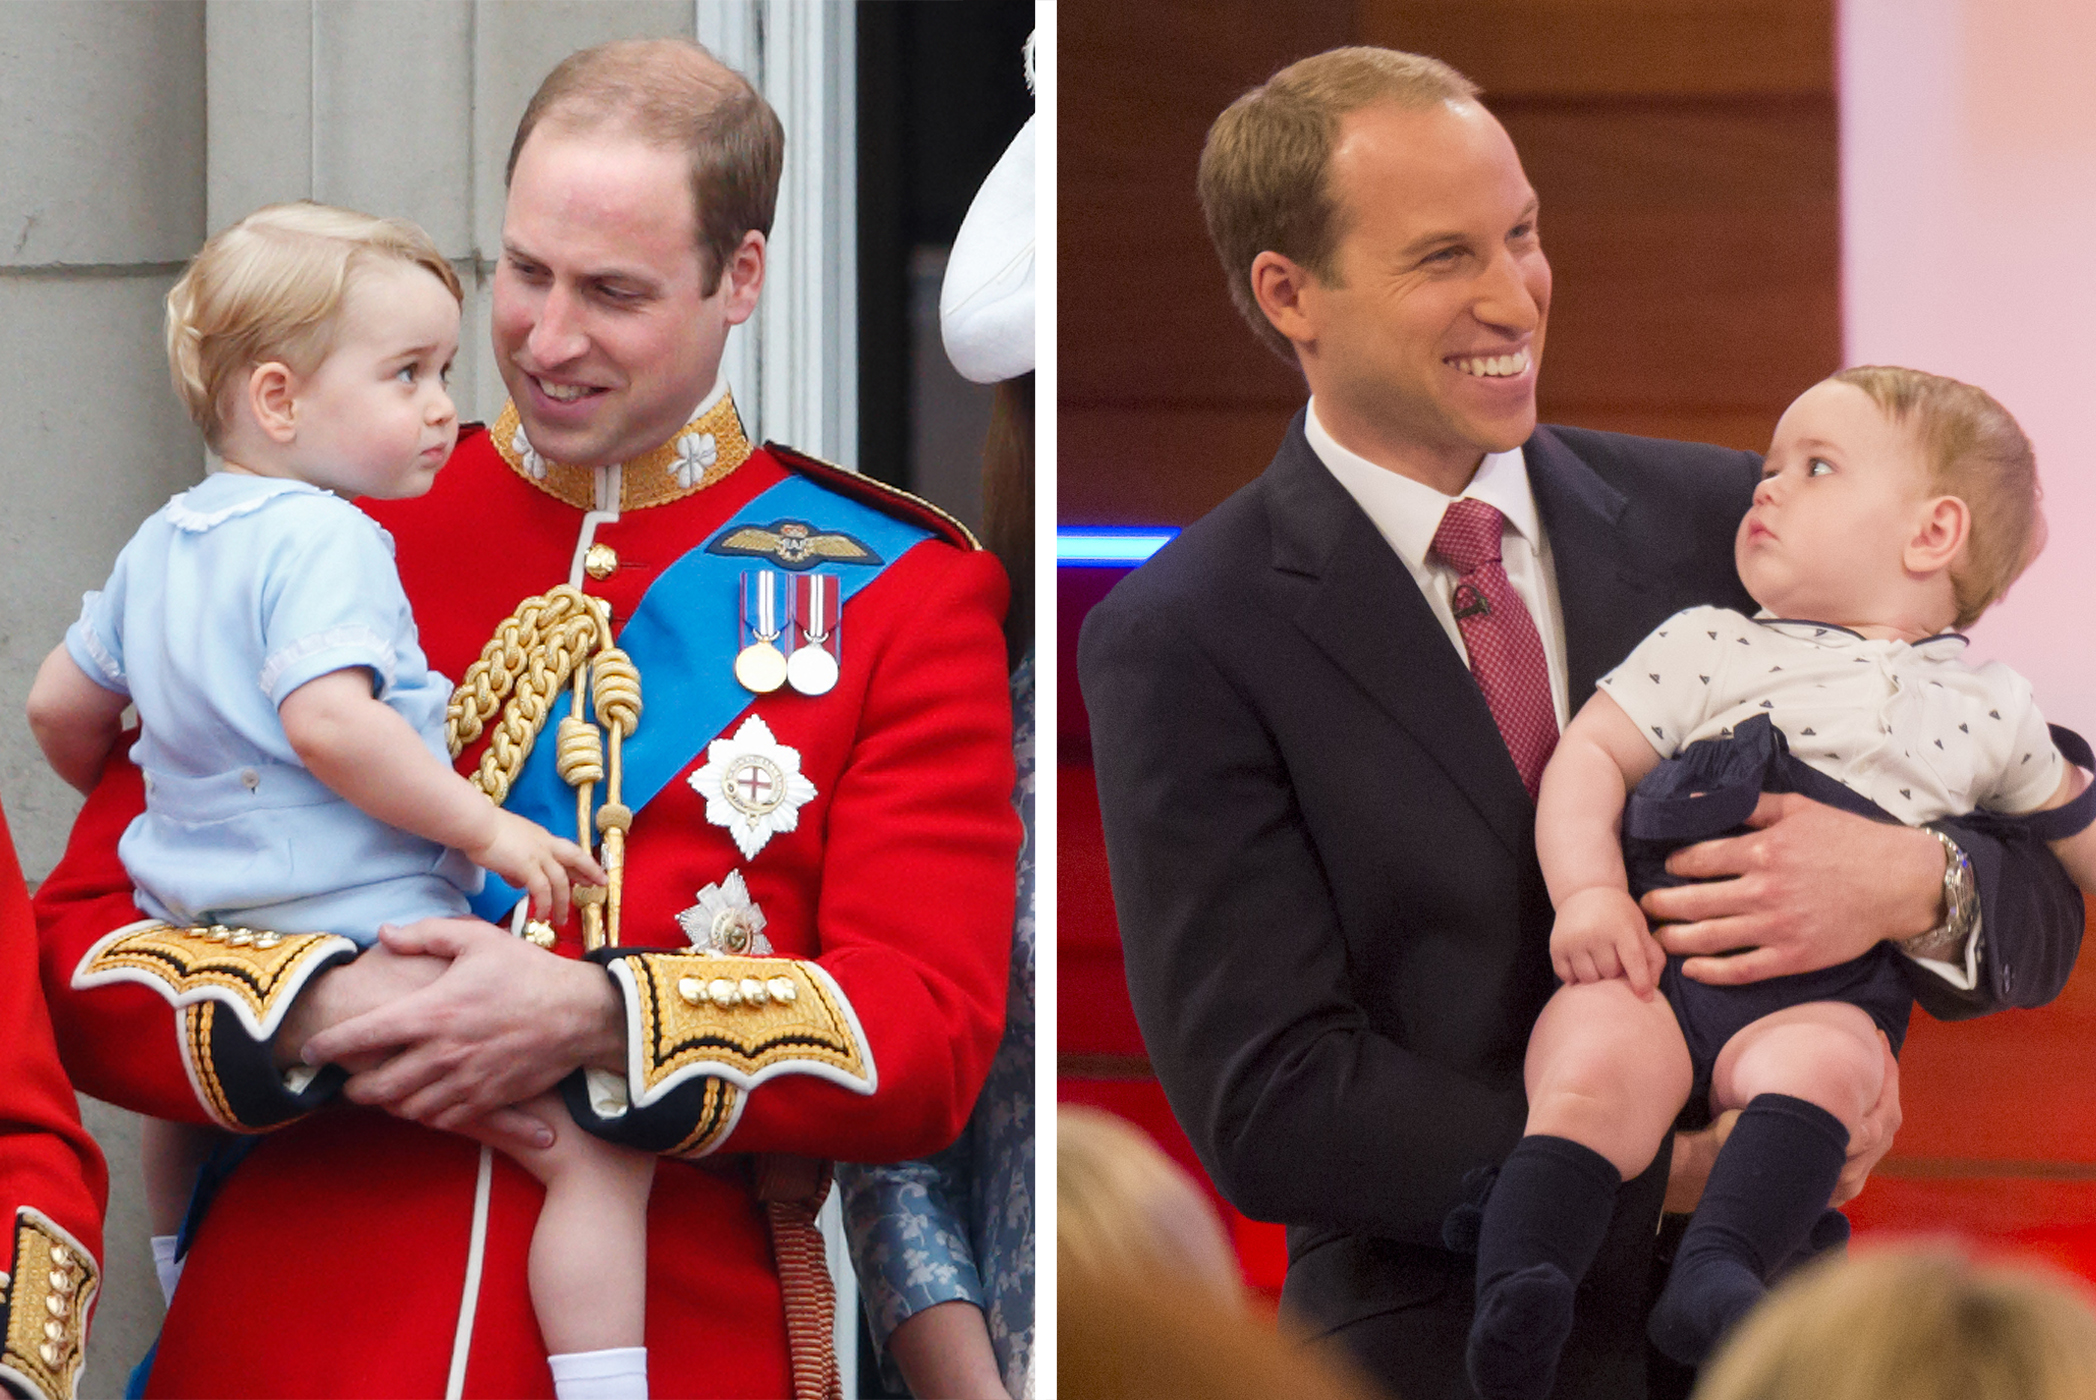 (left) Prince William, Duke of Cambridge carries his son Prince George of Cambridge as he stands on the balcony of Buckingham Palace during Trooping the Colour on June 13, 2015 in London, England; (right) Prince William look-alike Simon Watkinson with Prince George look-alike on the Andrea McLean 'Loose Women' TV show, London, UK, June 10, 2016.